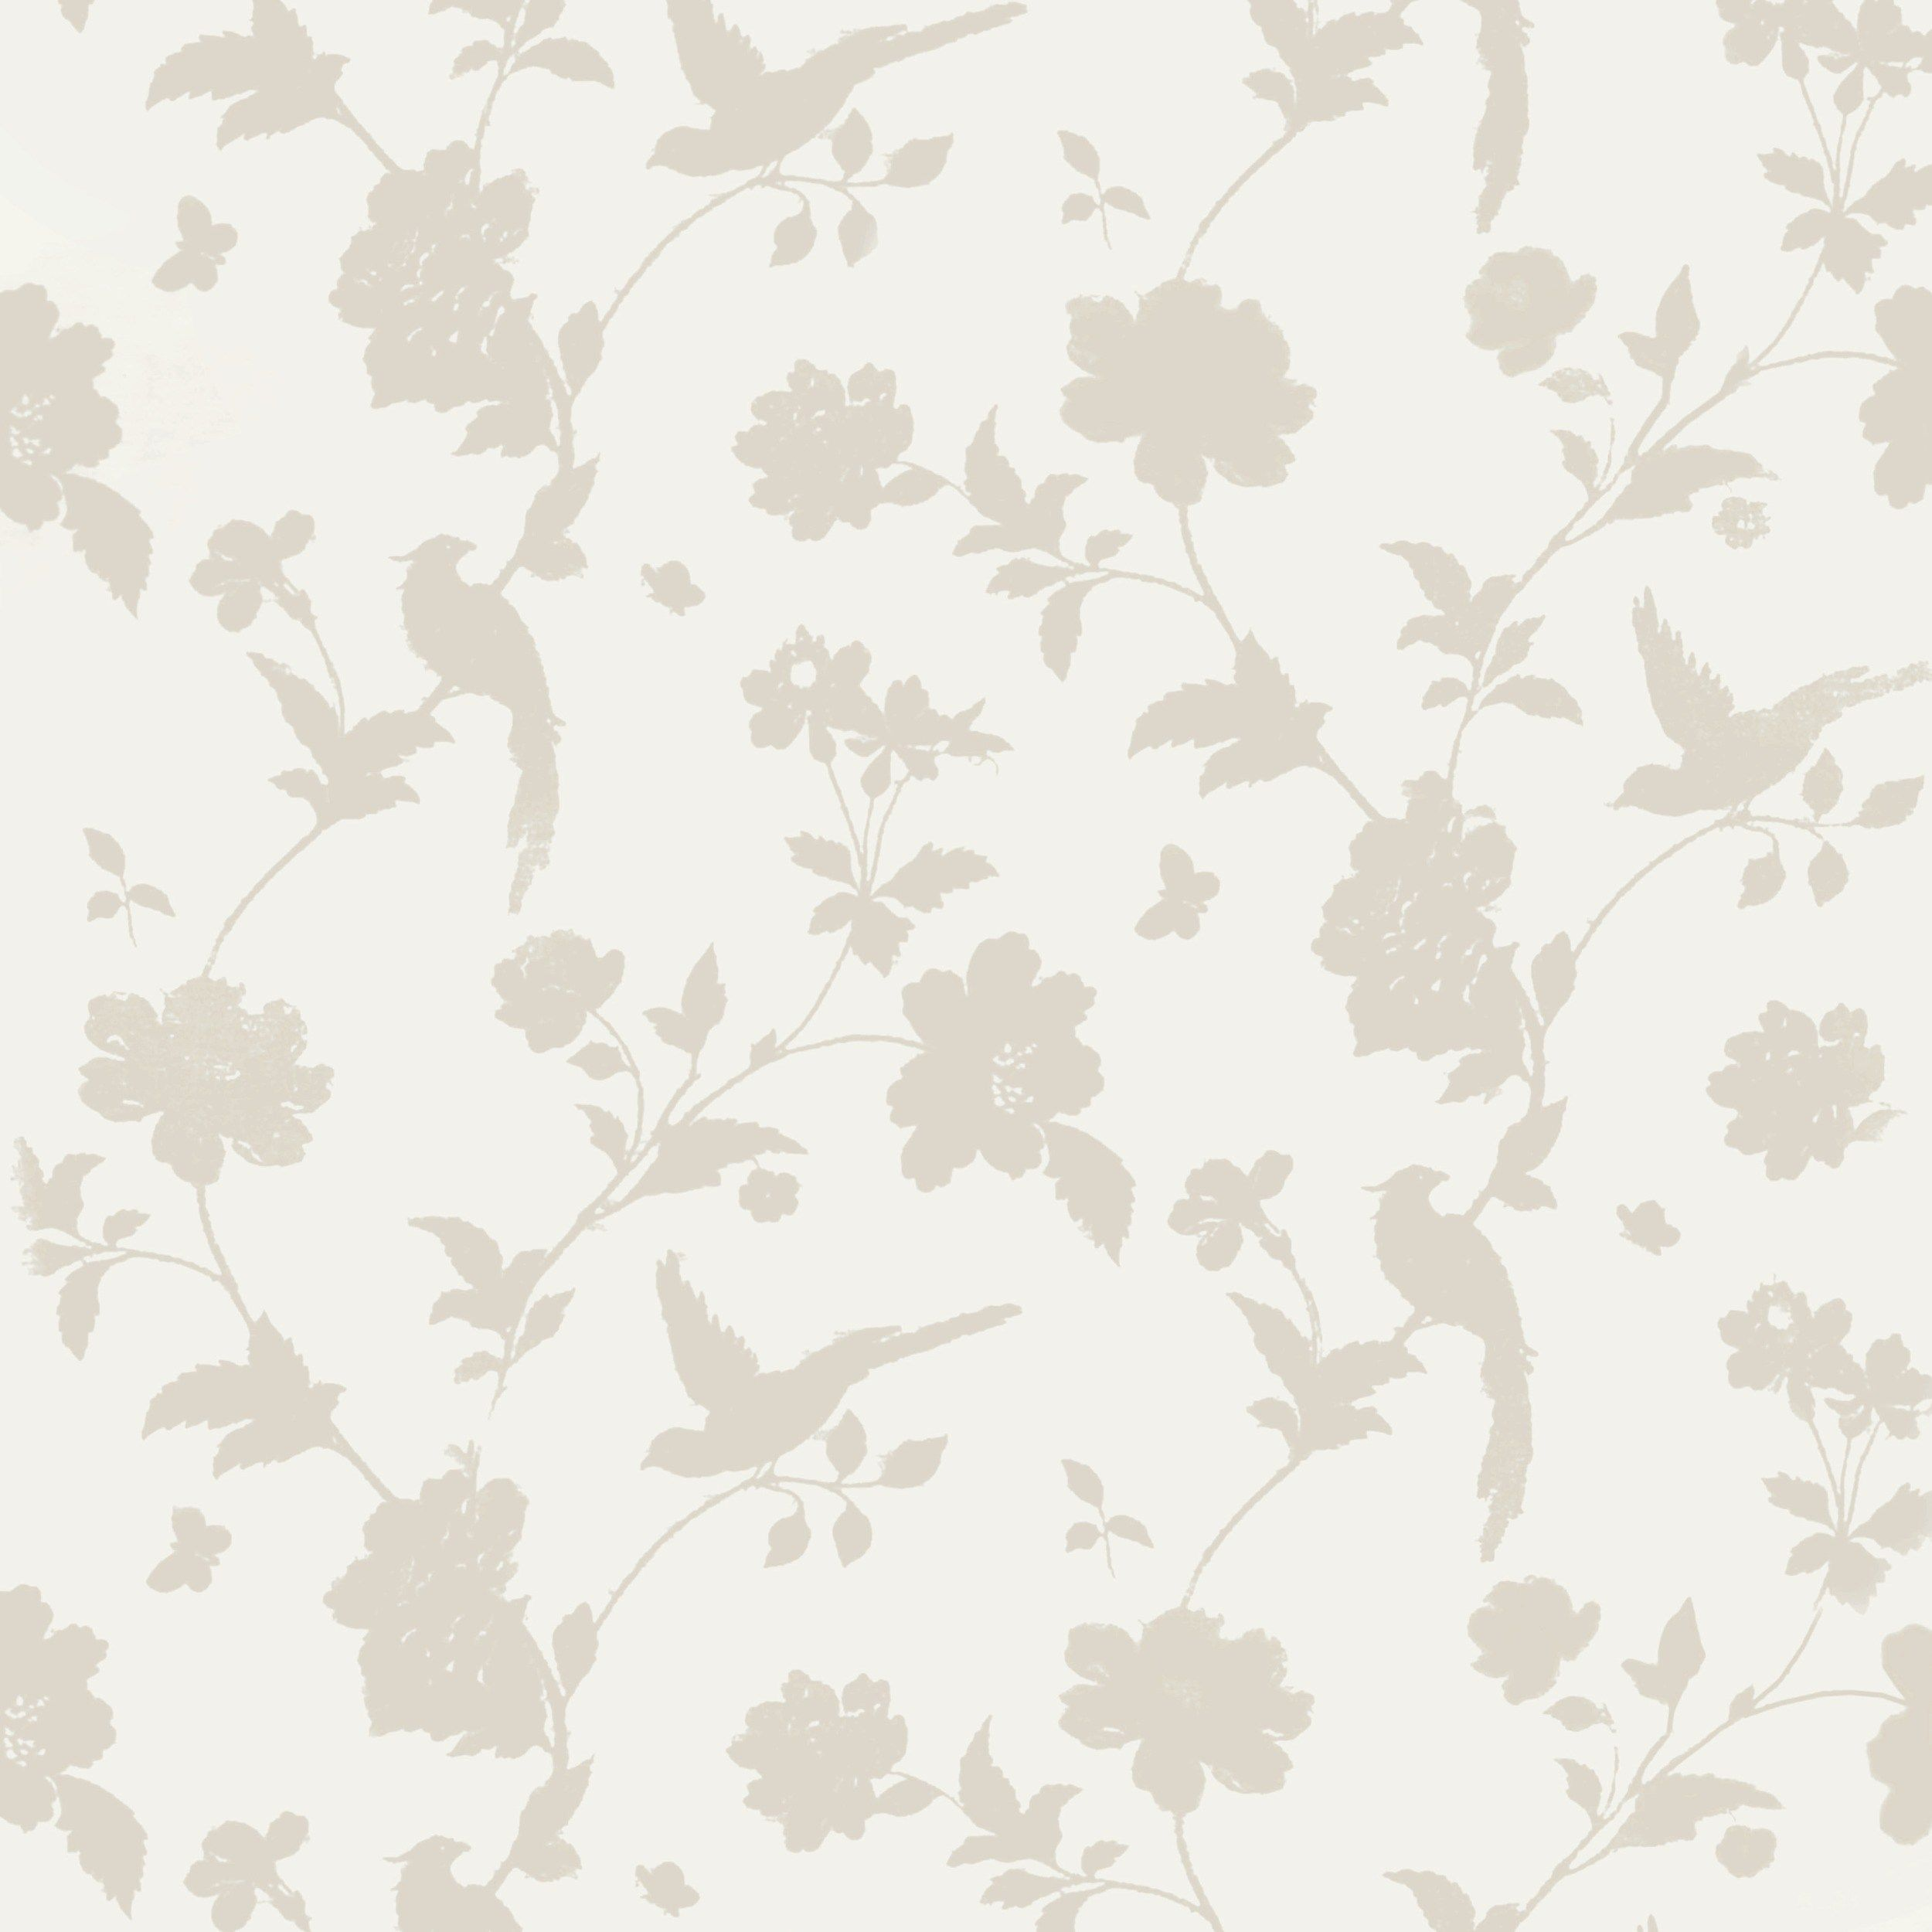 laura ashley discontinued wallpaper borders » Wallppapers